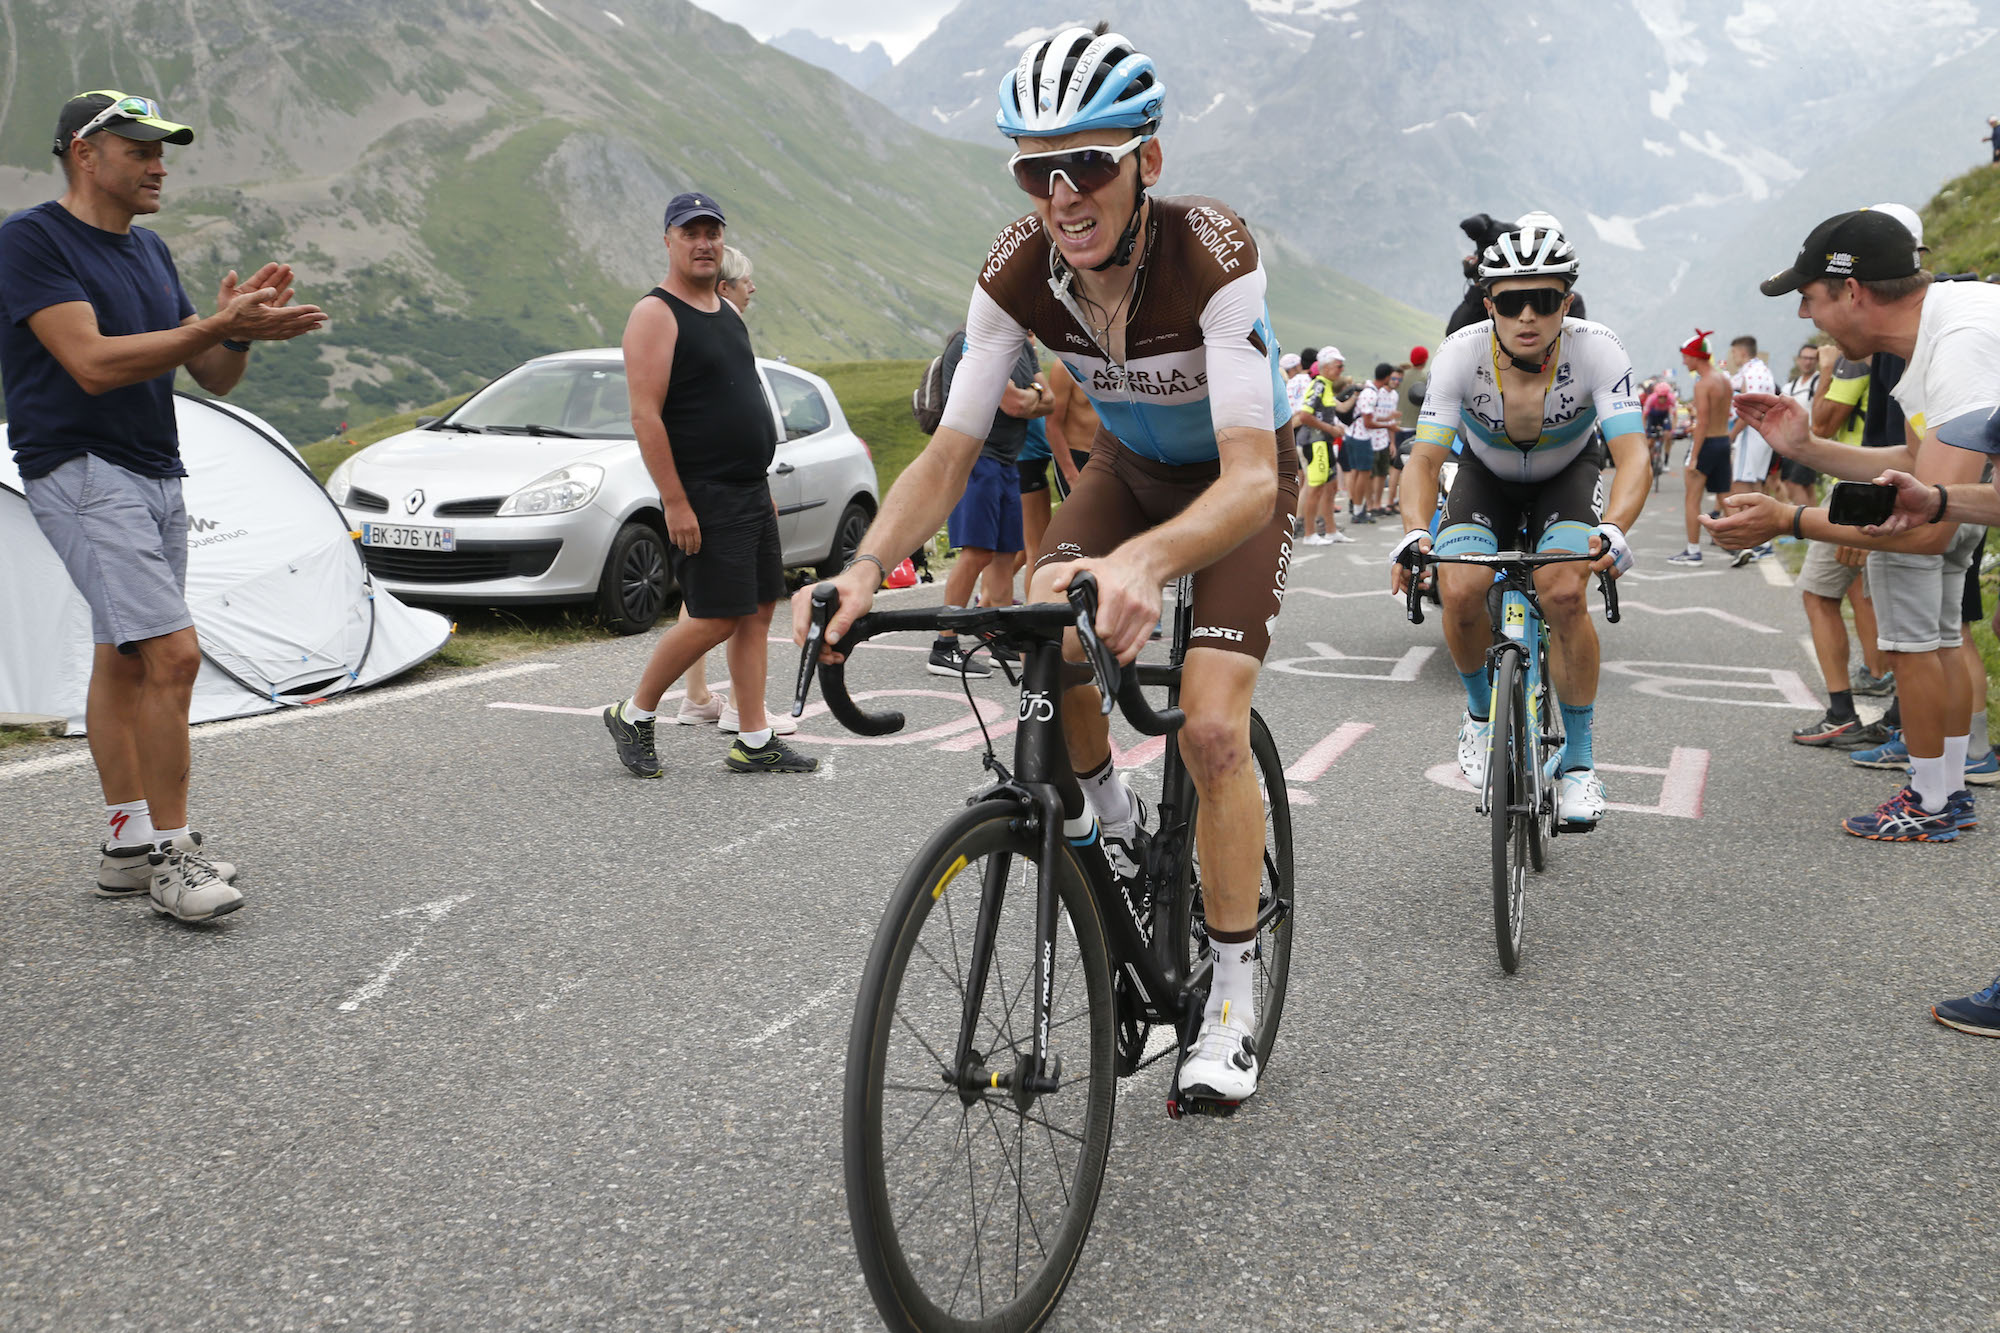 Romain Bardet to ride Giro d'Italia and miss Tour de France in 2020